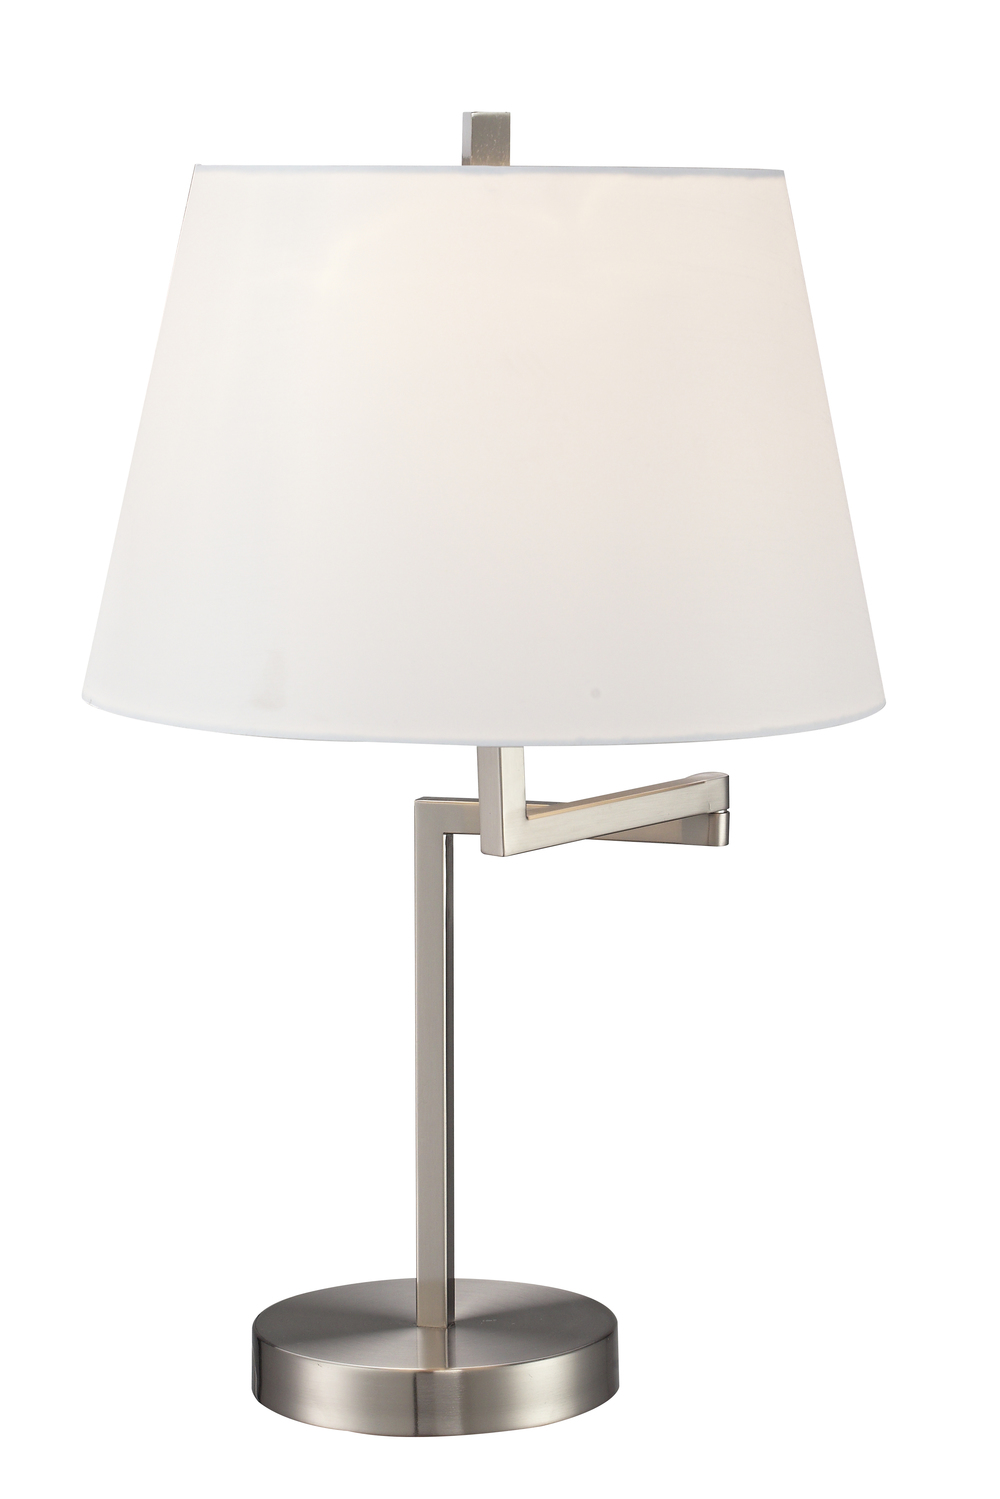 10022 | SWING ARM TABLE LAMP